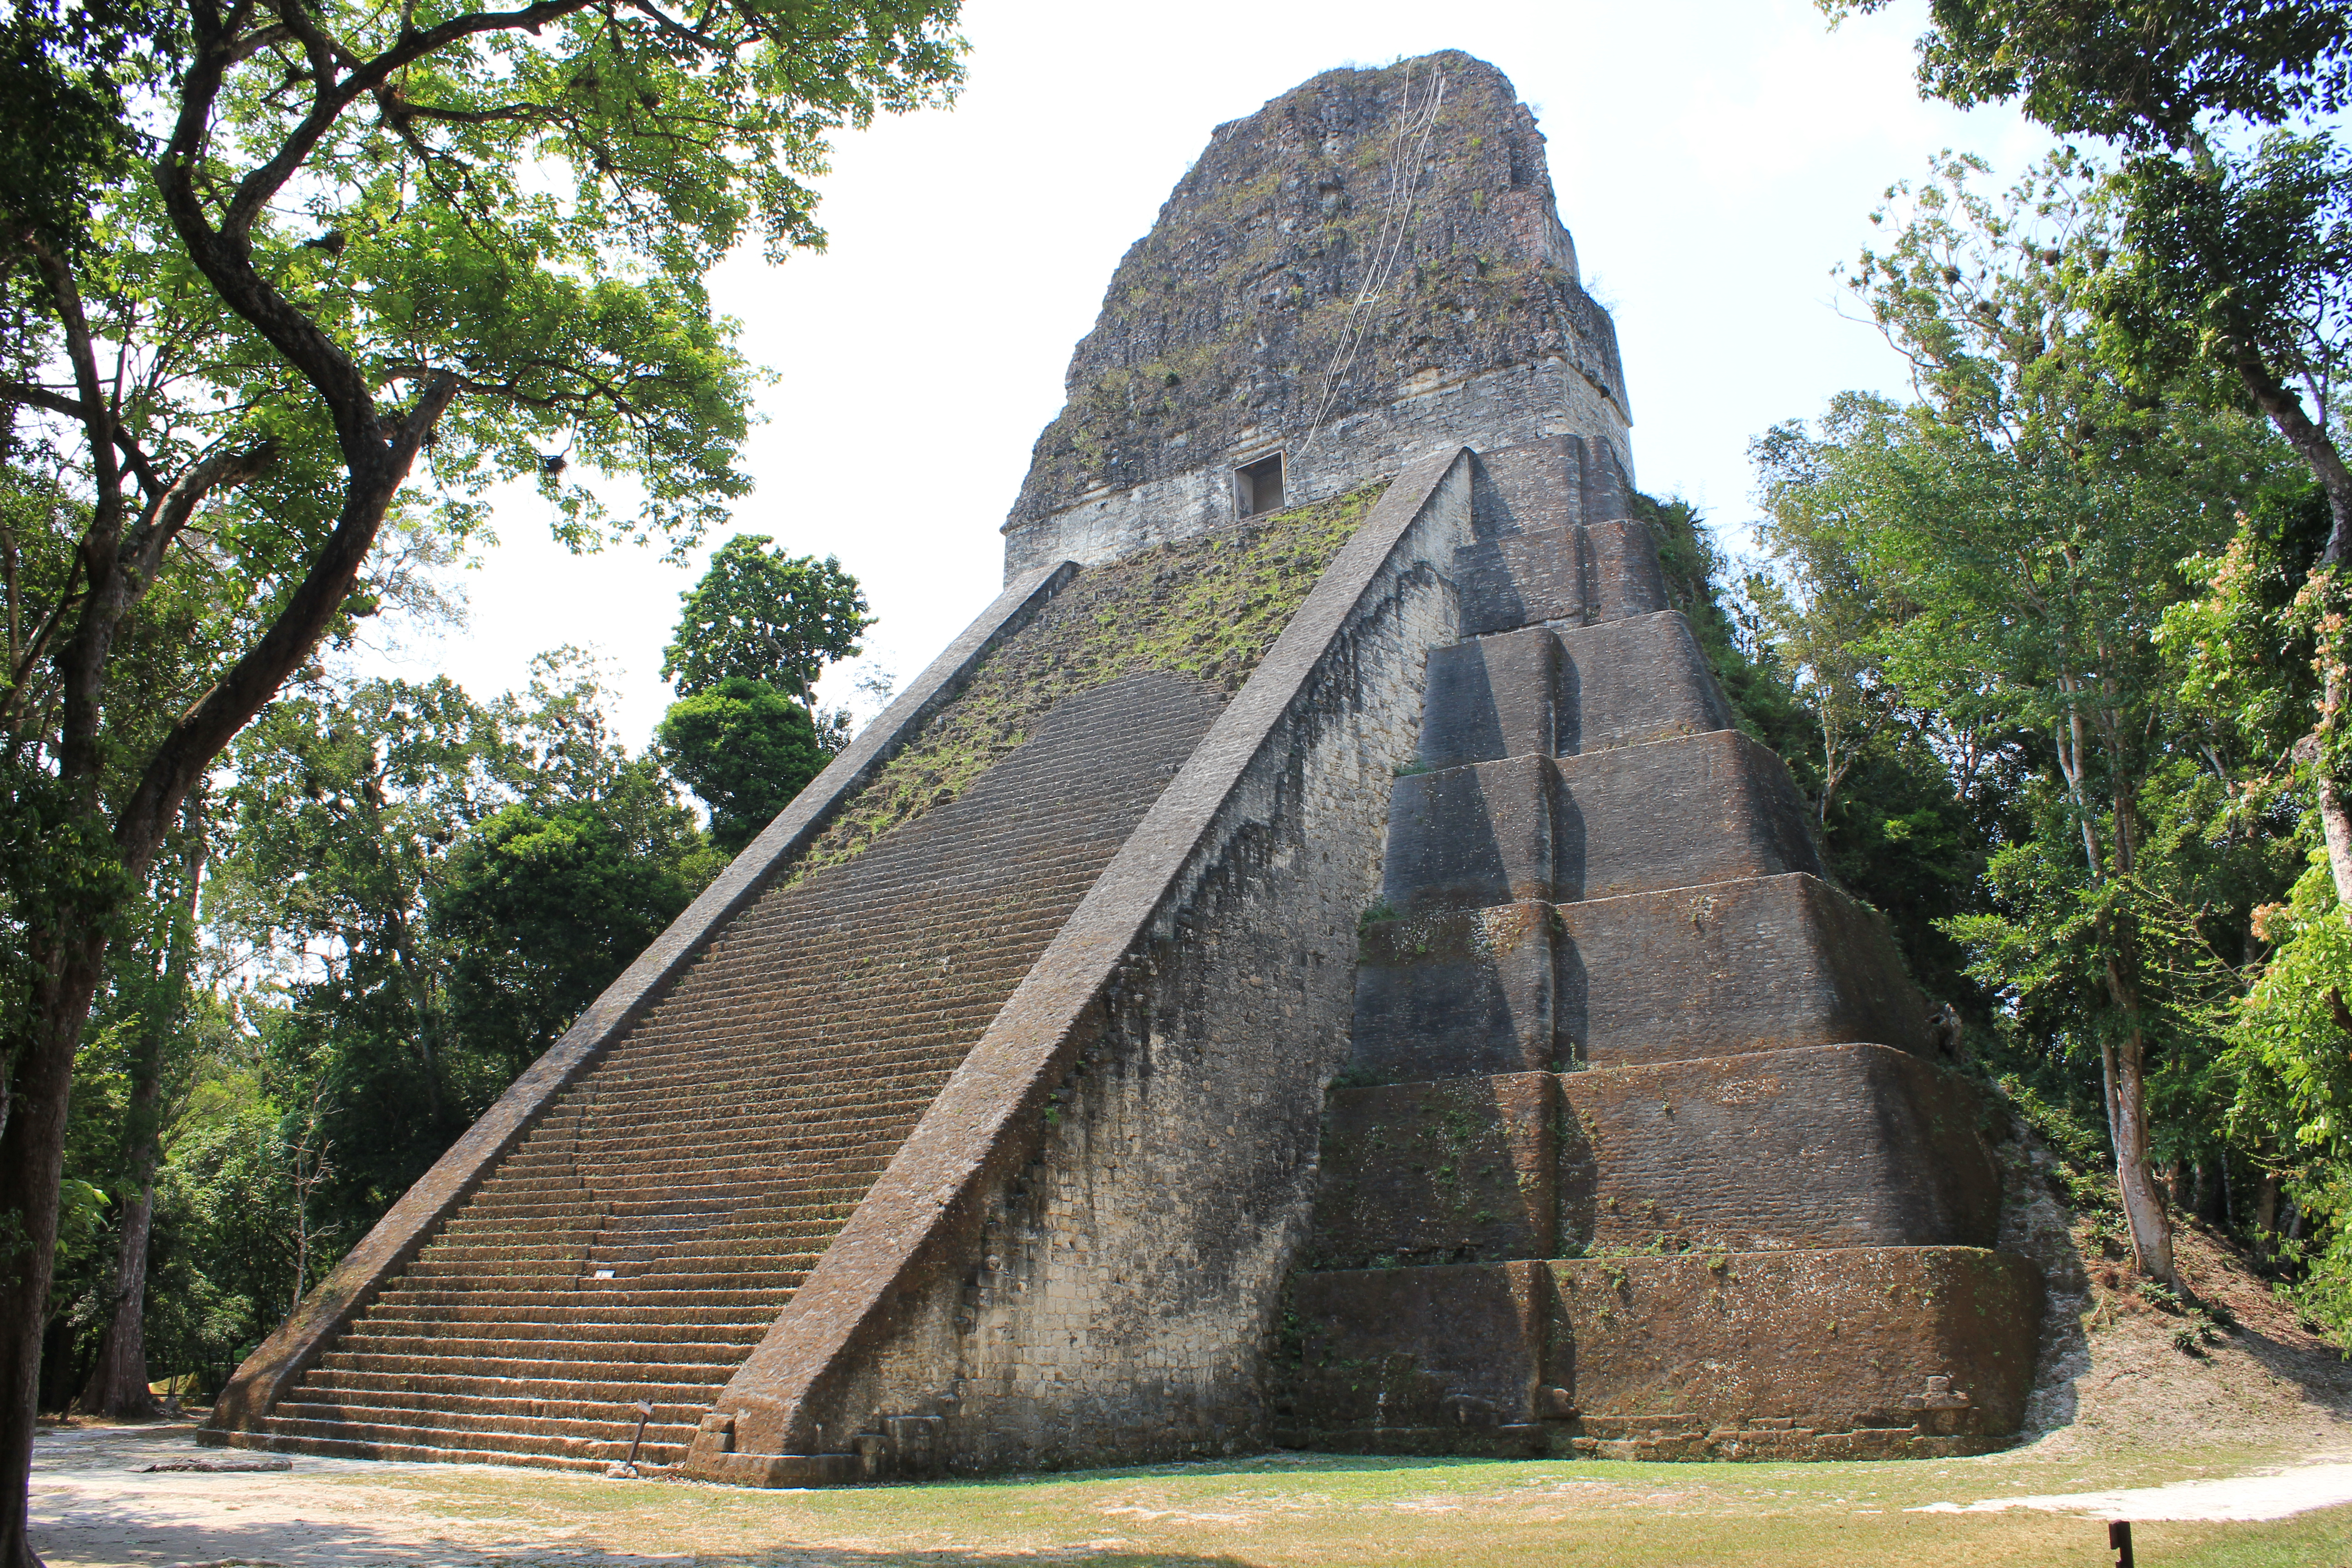 Tikal, is one of the largest archaeological sites of the pre-Columbian Maya civilization